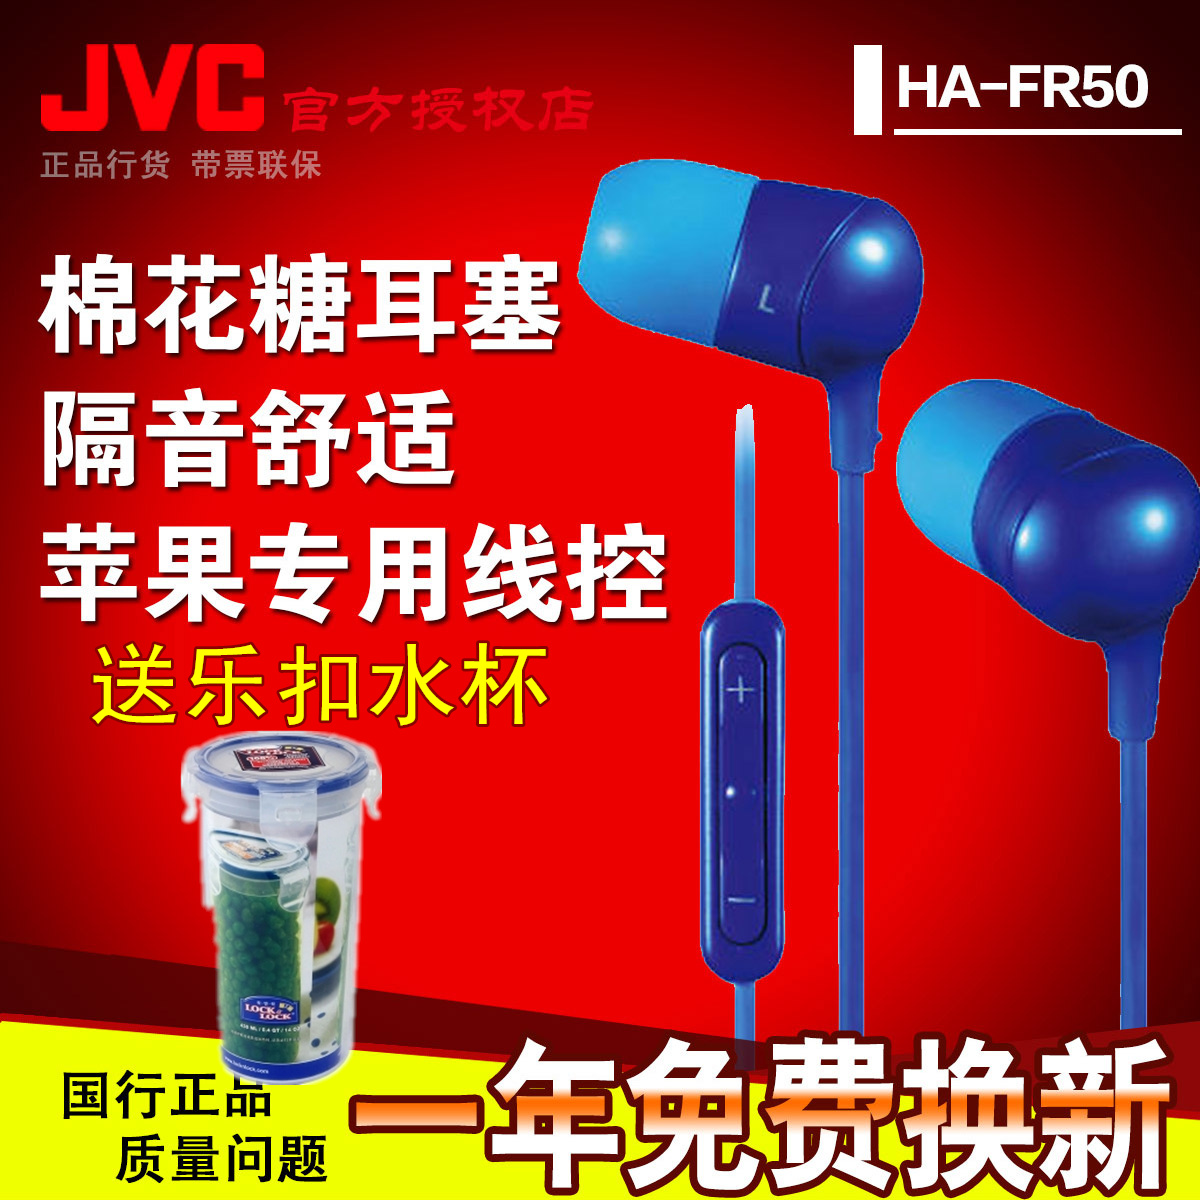 Jvc/jvc HA-FR50 memory foam apple mobile phone with headset headphone wire with wheat